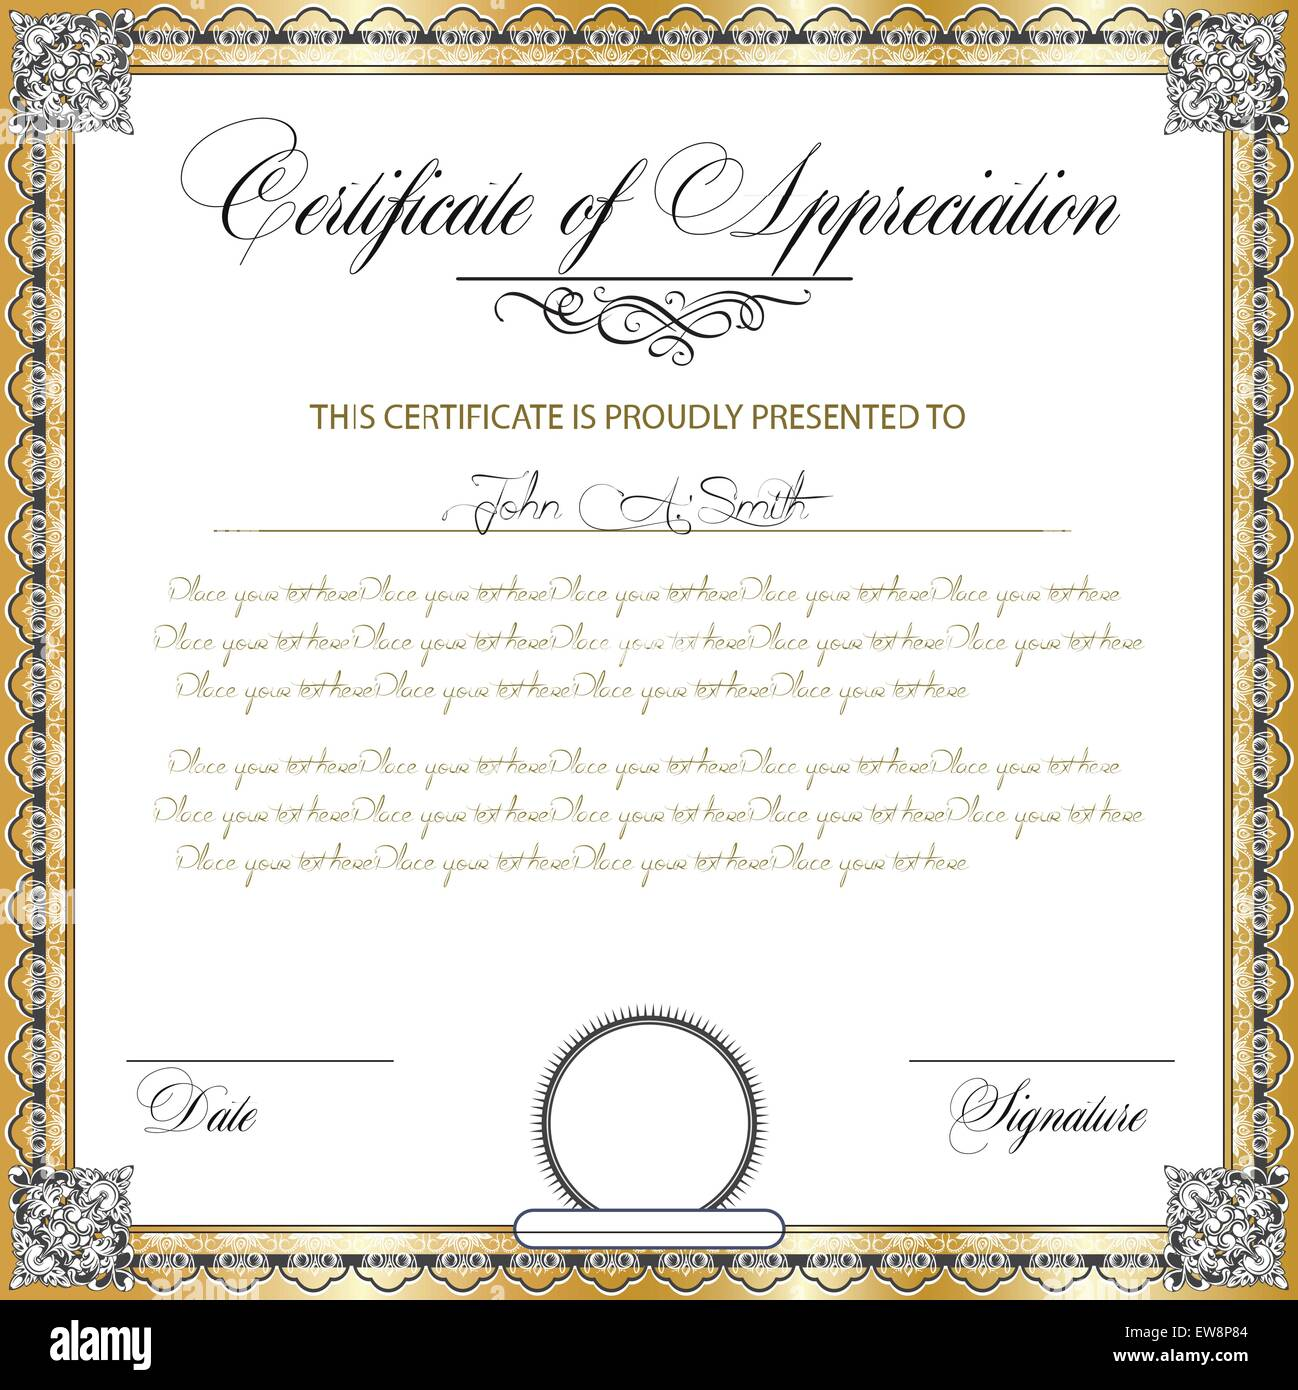 Vintage certificate of appreciation with ornate elegant retro stock vintage certificate of appreciation with ornate elegant retro abstract floral design dark gray and white flowers and leaves on gold and white background yelopaper Image collections